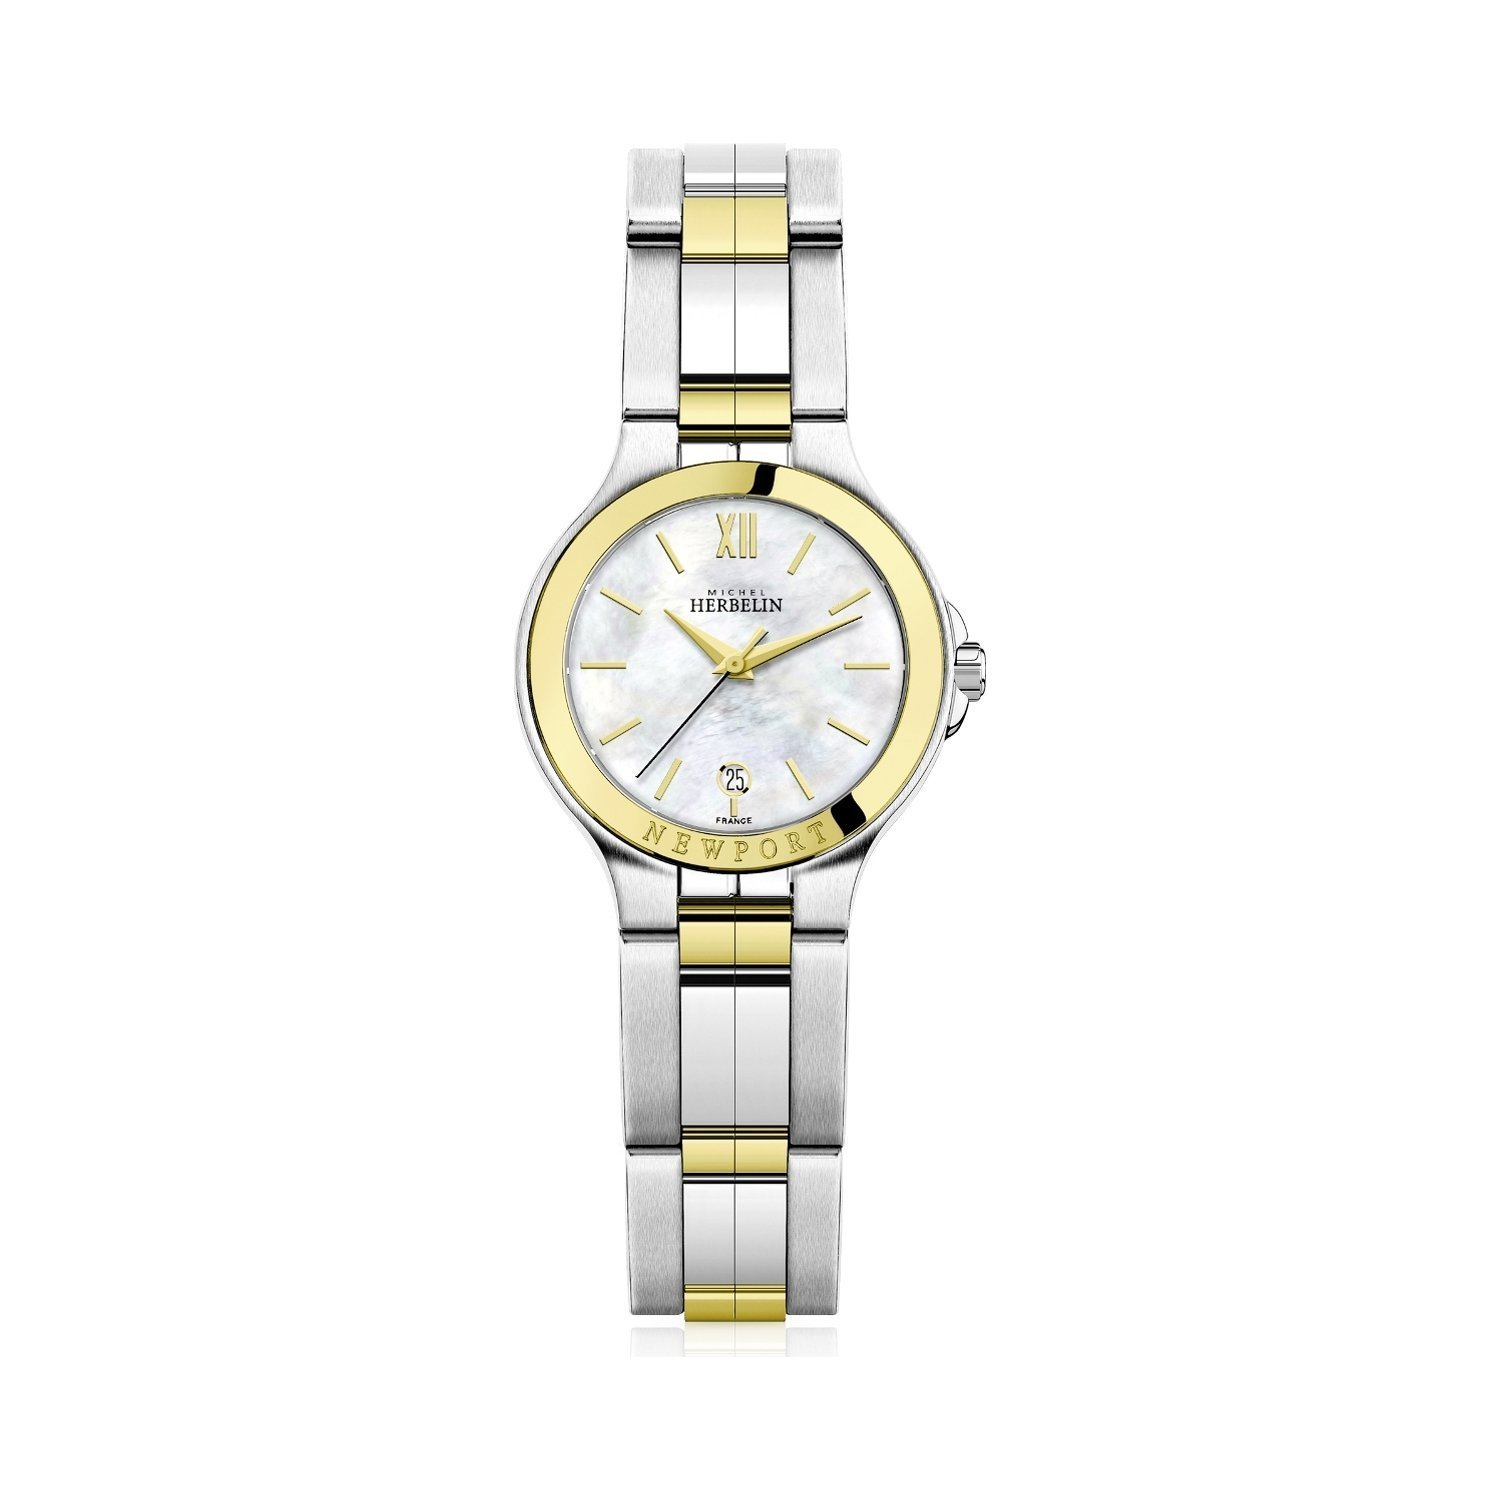 Montre Michel Herbelin Newport Royale 14298/BT19 vue 1